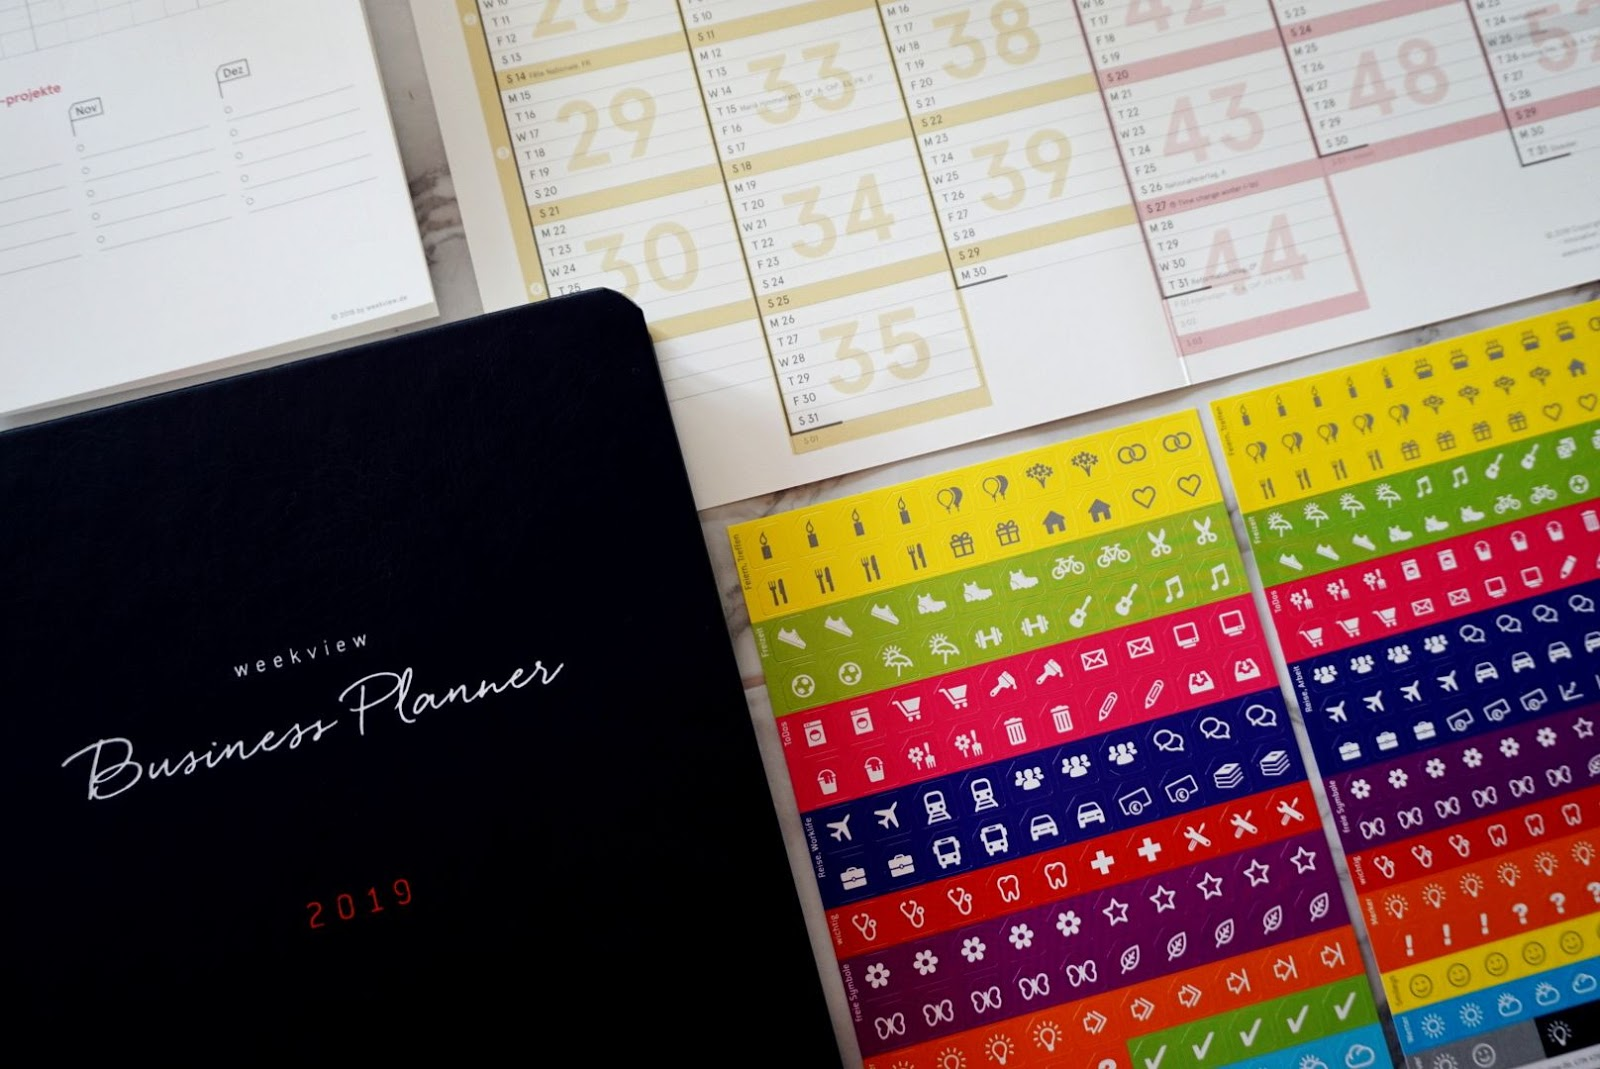 HOW TO FOCUS ON YOUR GOALS AND BUSINESS WITH WEEK VIEW INTERNATIONAL BUSINESS PLANNER